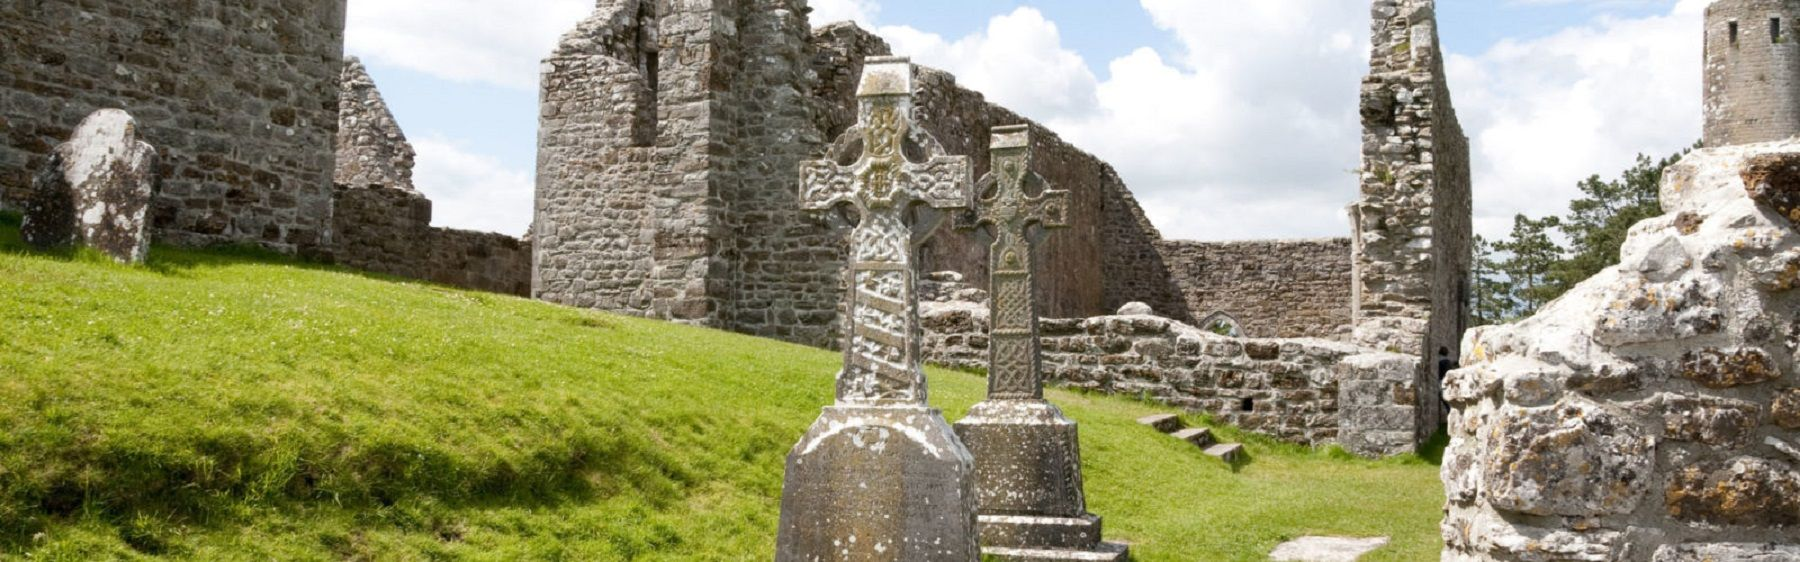 ireland-seven-churches-mysterious-adventures-tours-00